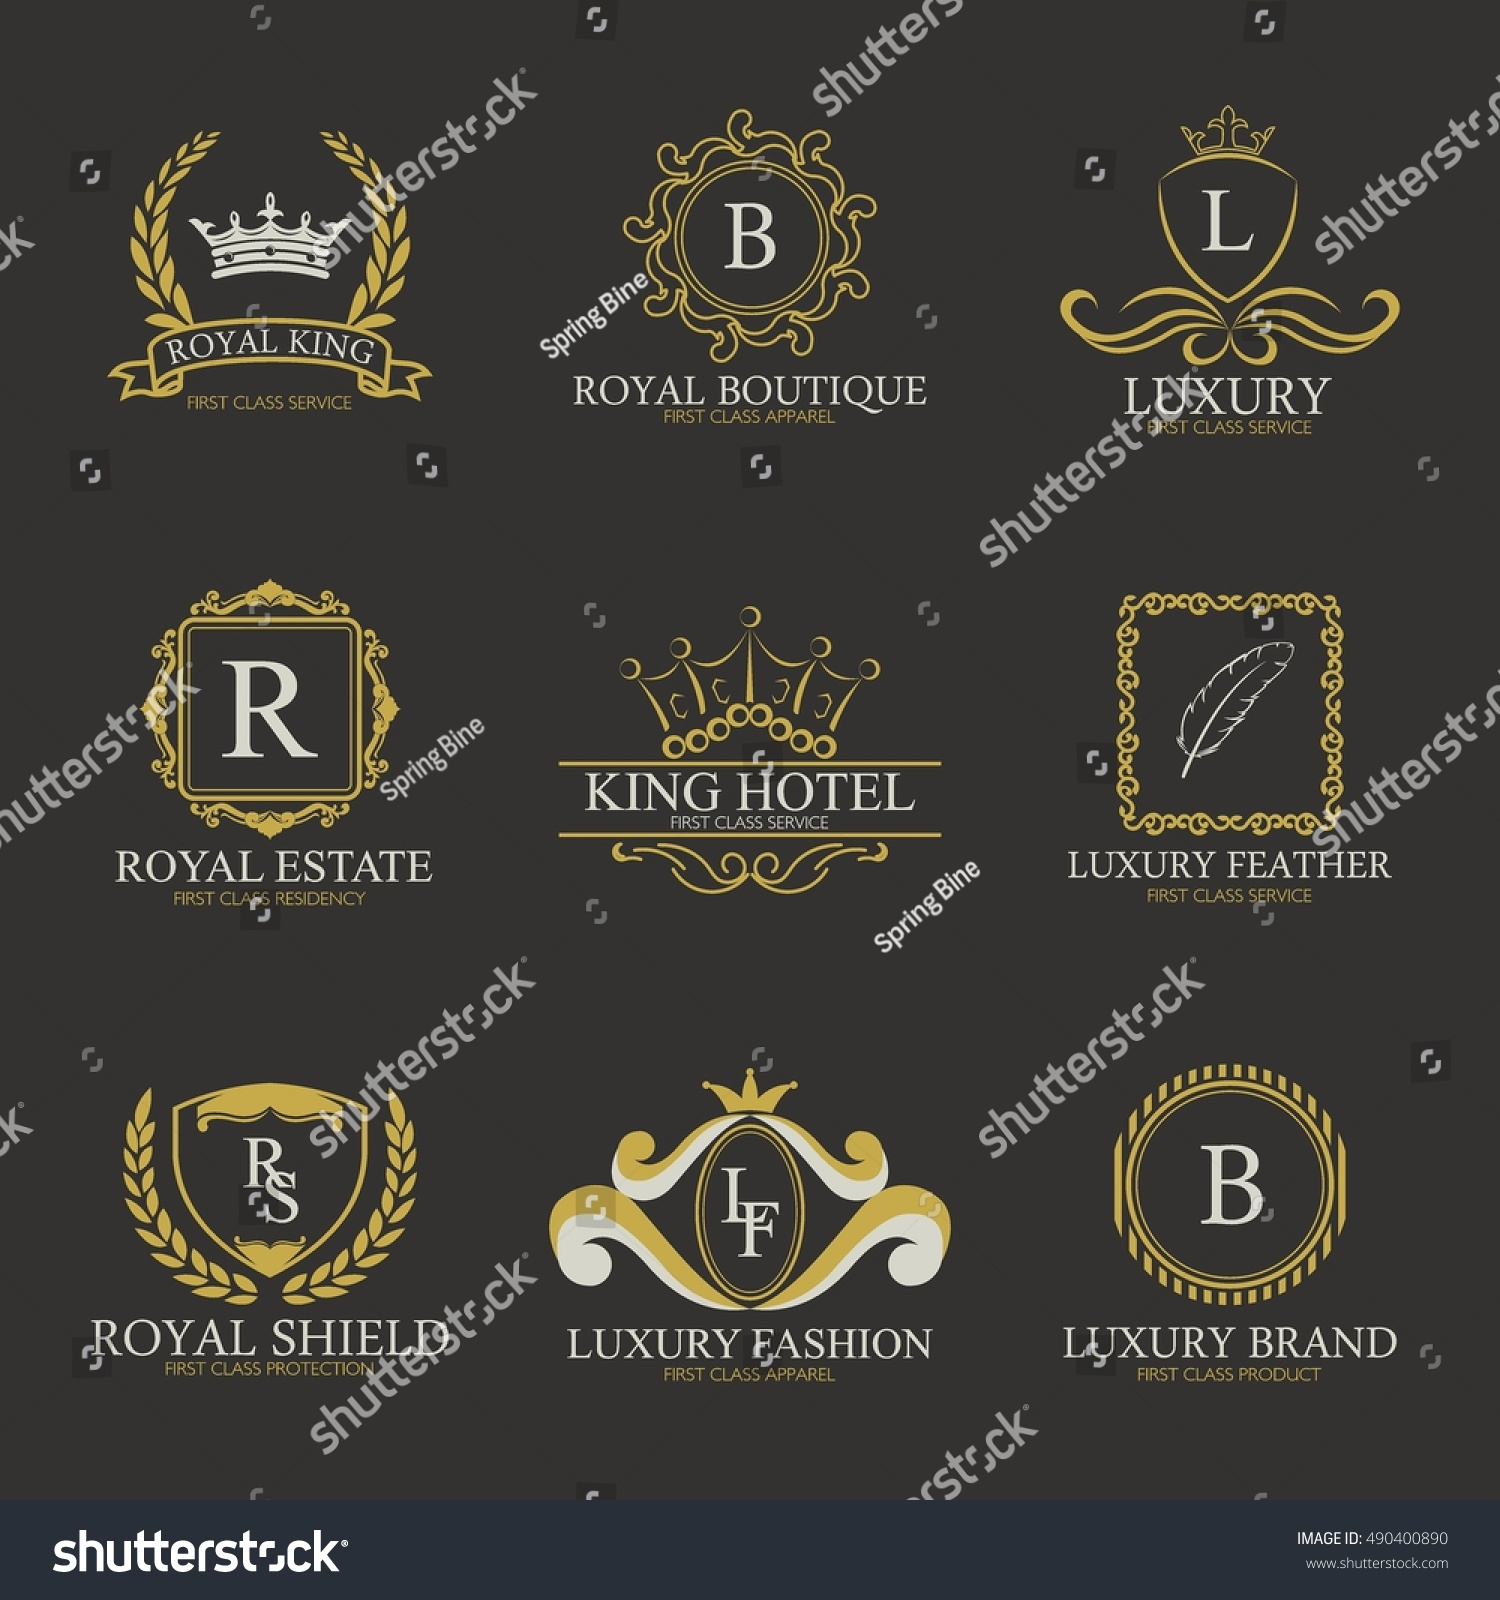 Luxury Logo Collectiondesign Boutique Hotelresortrestaurant Royalty Stock Vector Royalty Free 490400890